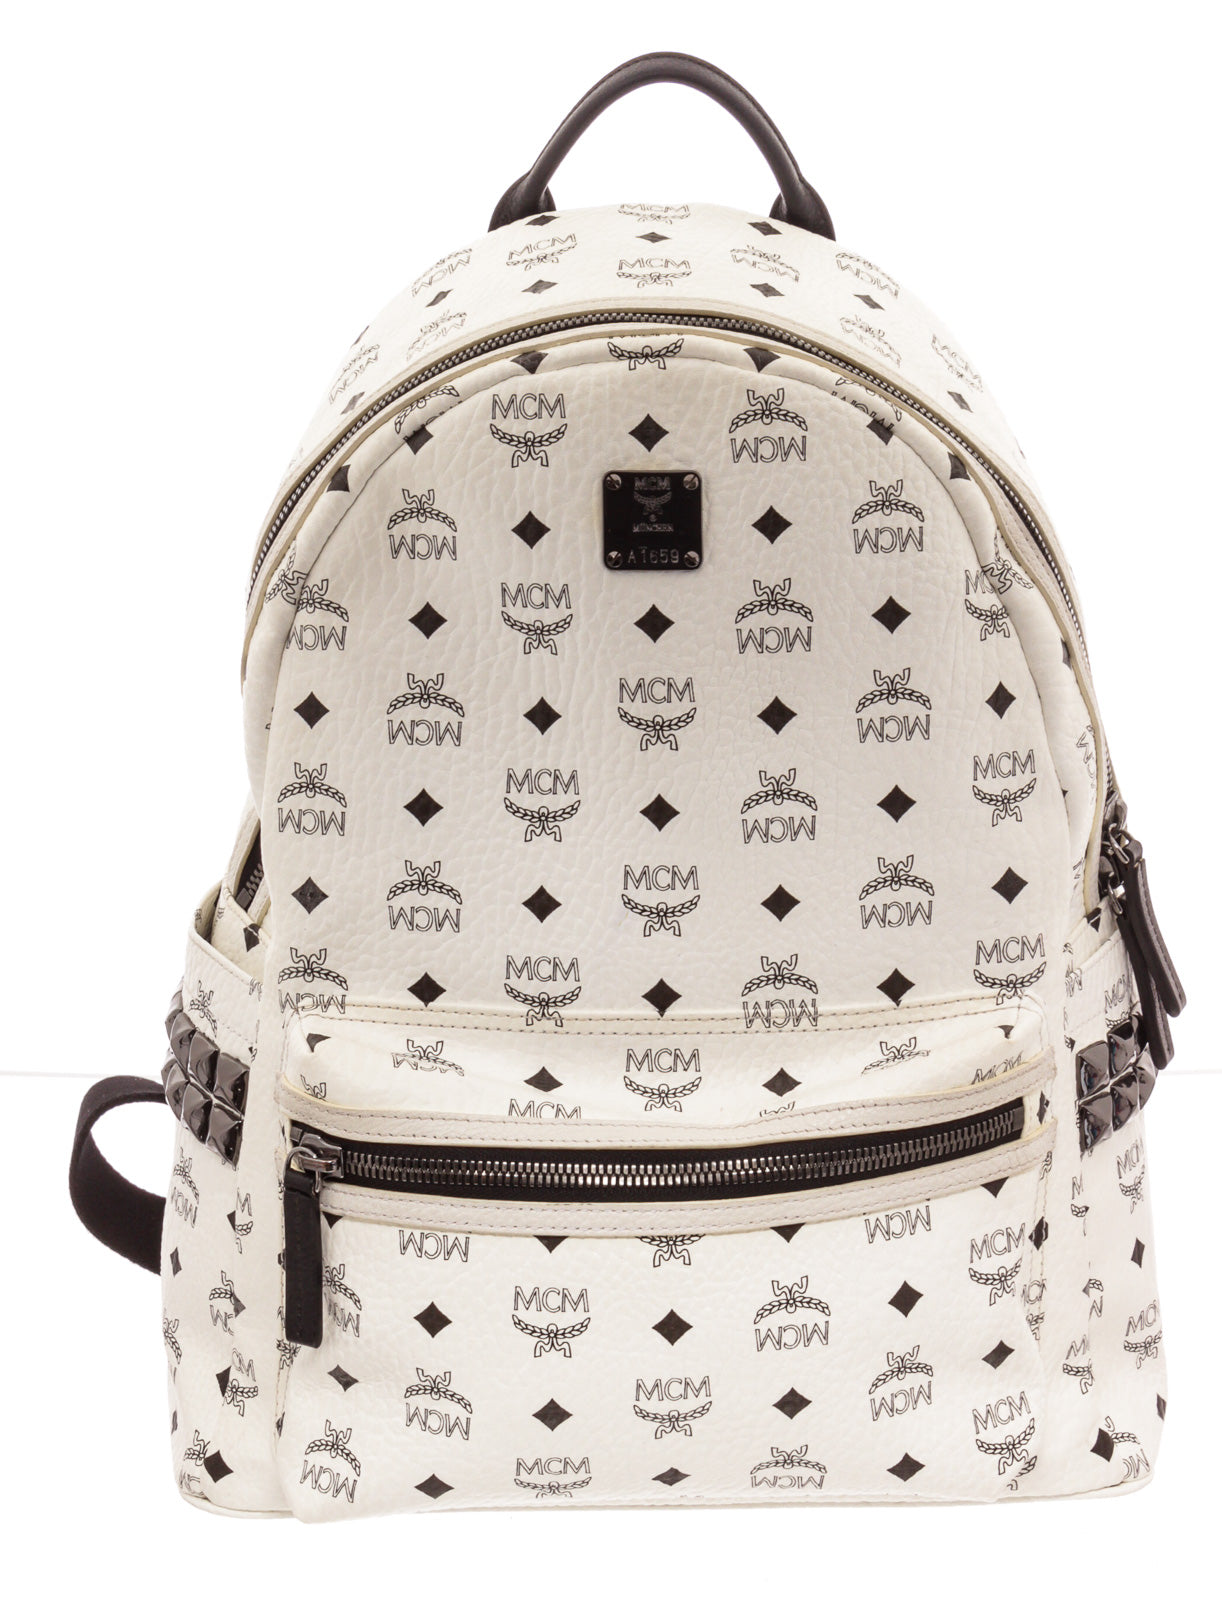 MCM White Black Stud Backpack